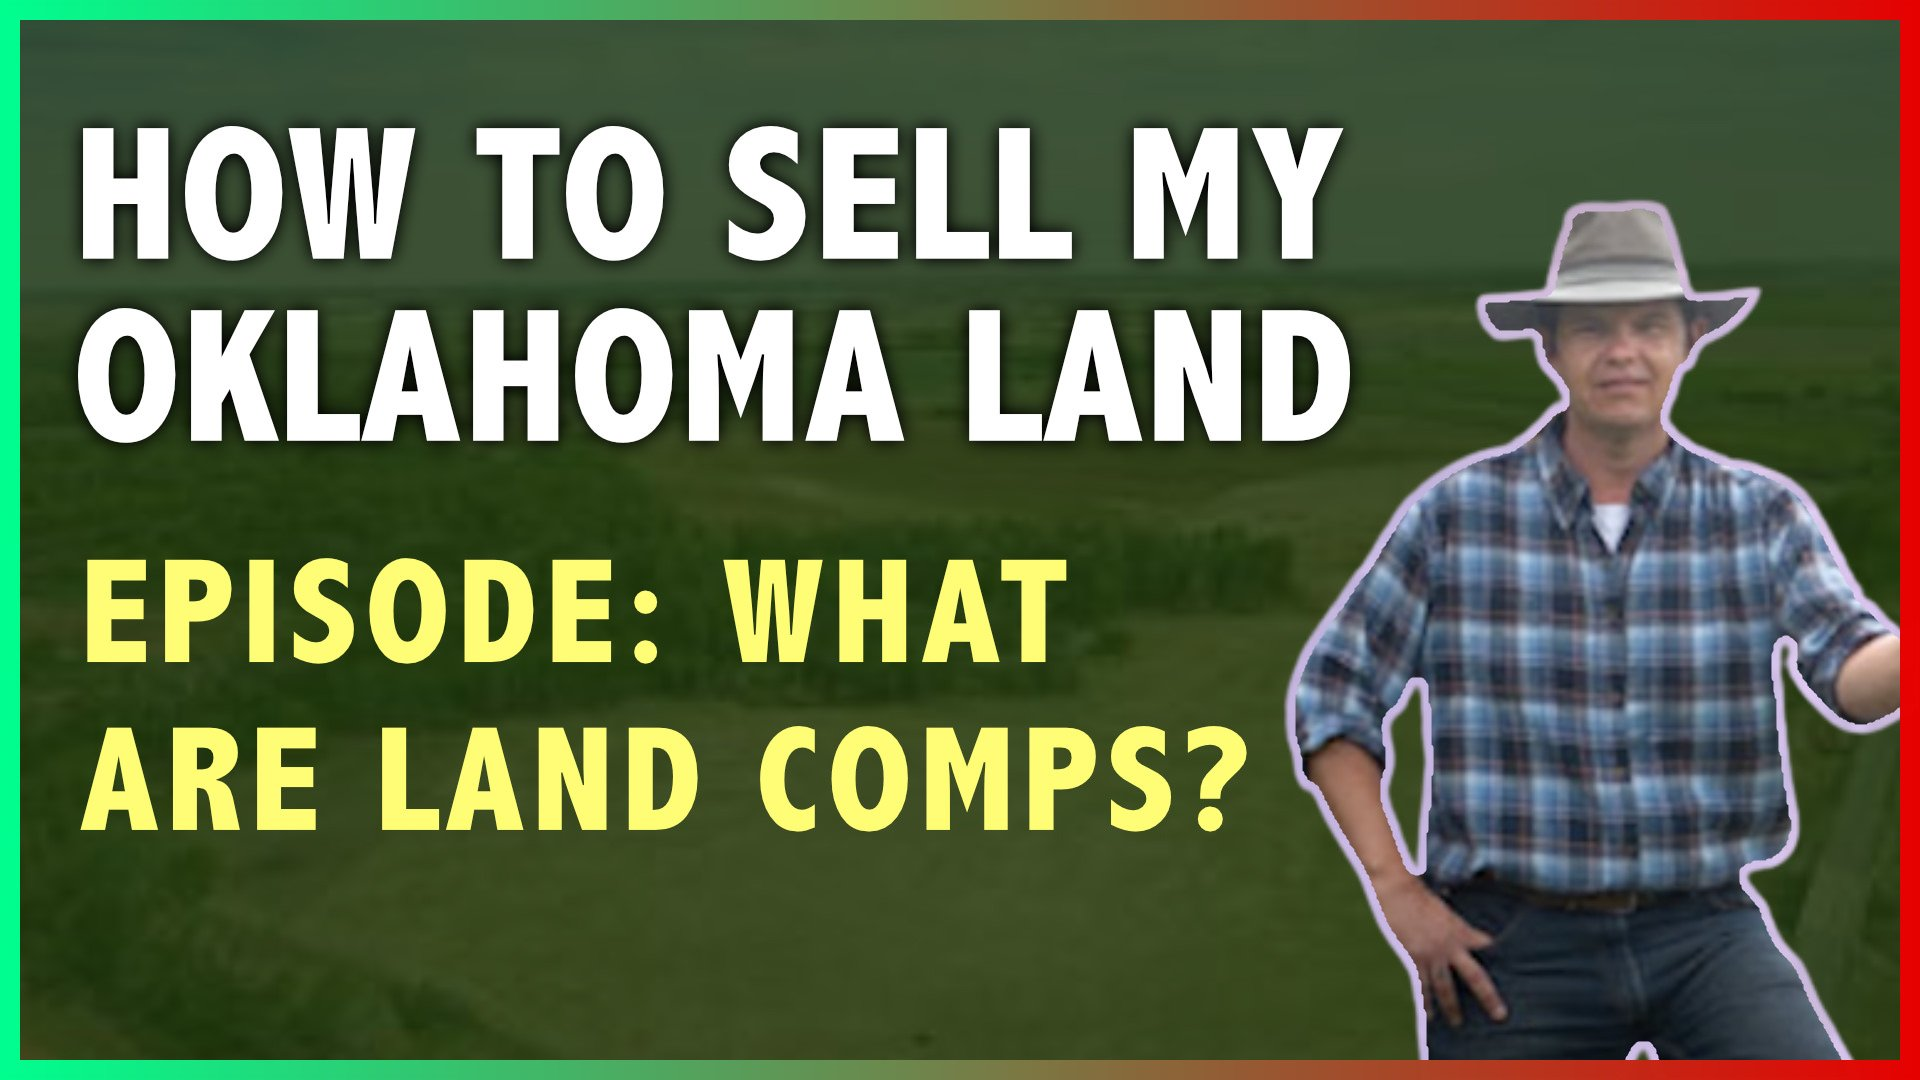 How To Sell My Oklahoma Land With Comps, Checklands